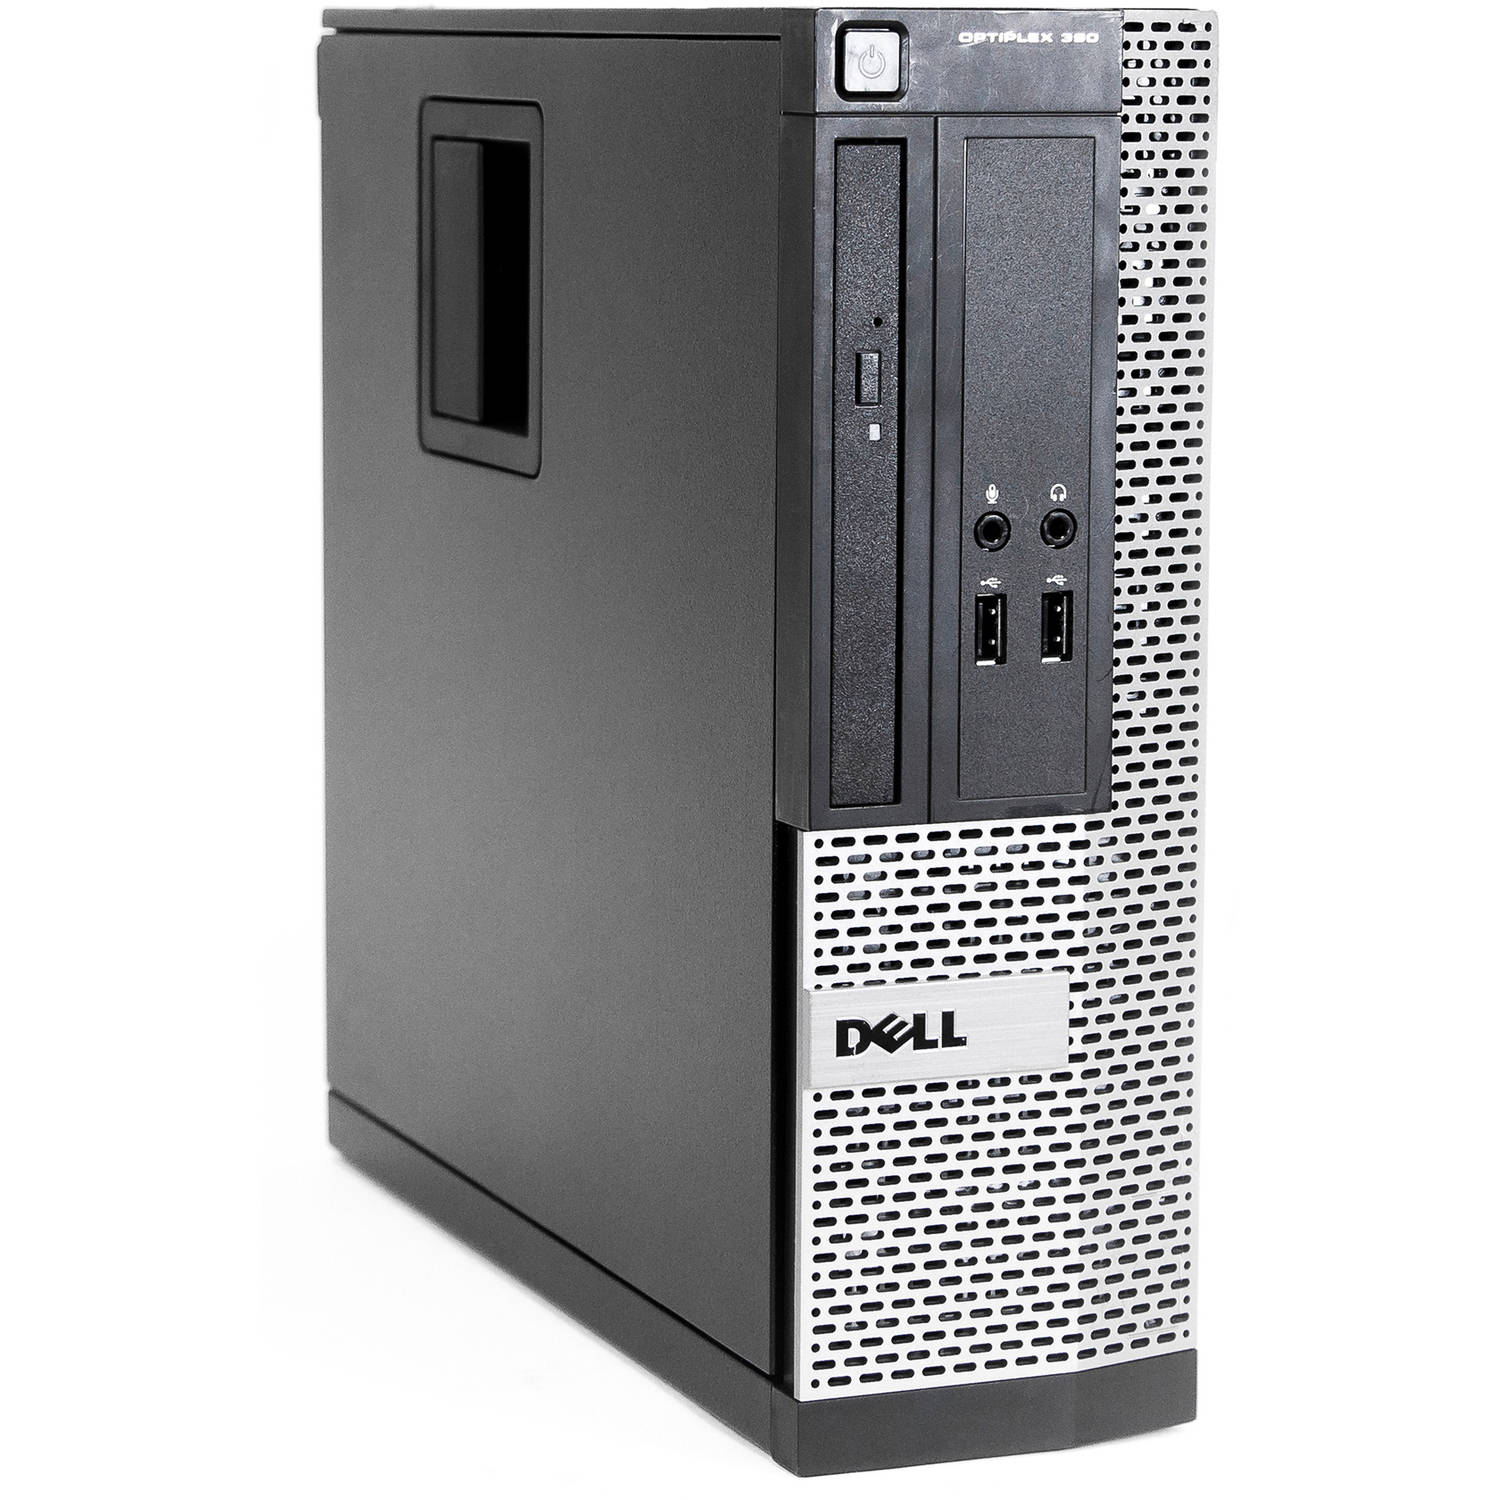 Refurbished Dell 390-SFF WA1-0224 Desktop PC with Intel Core i5-2400 Processor, 4GB Memory, 500GB Hard Drive and Windows 10 Pro (Monitor Not Included)